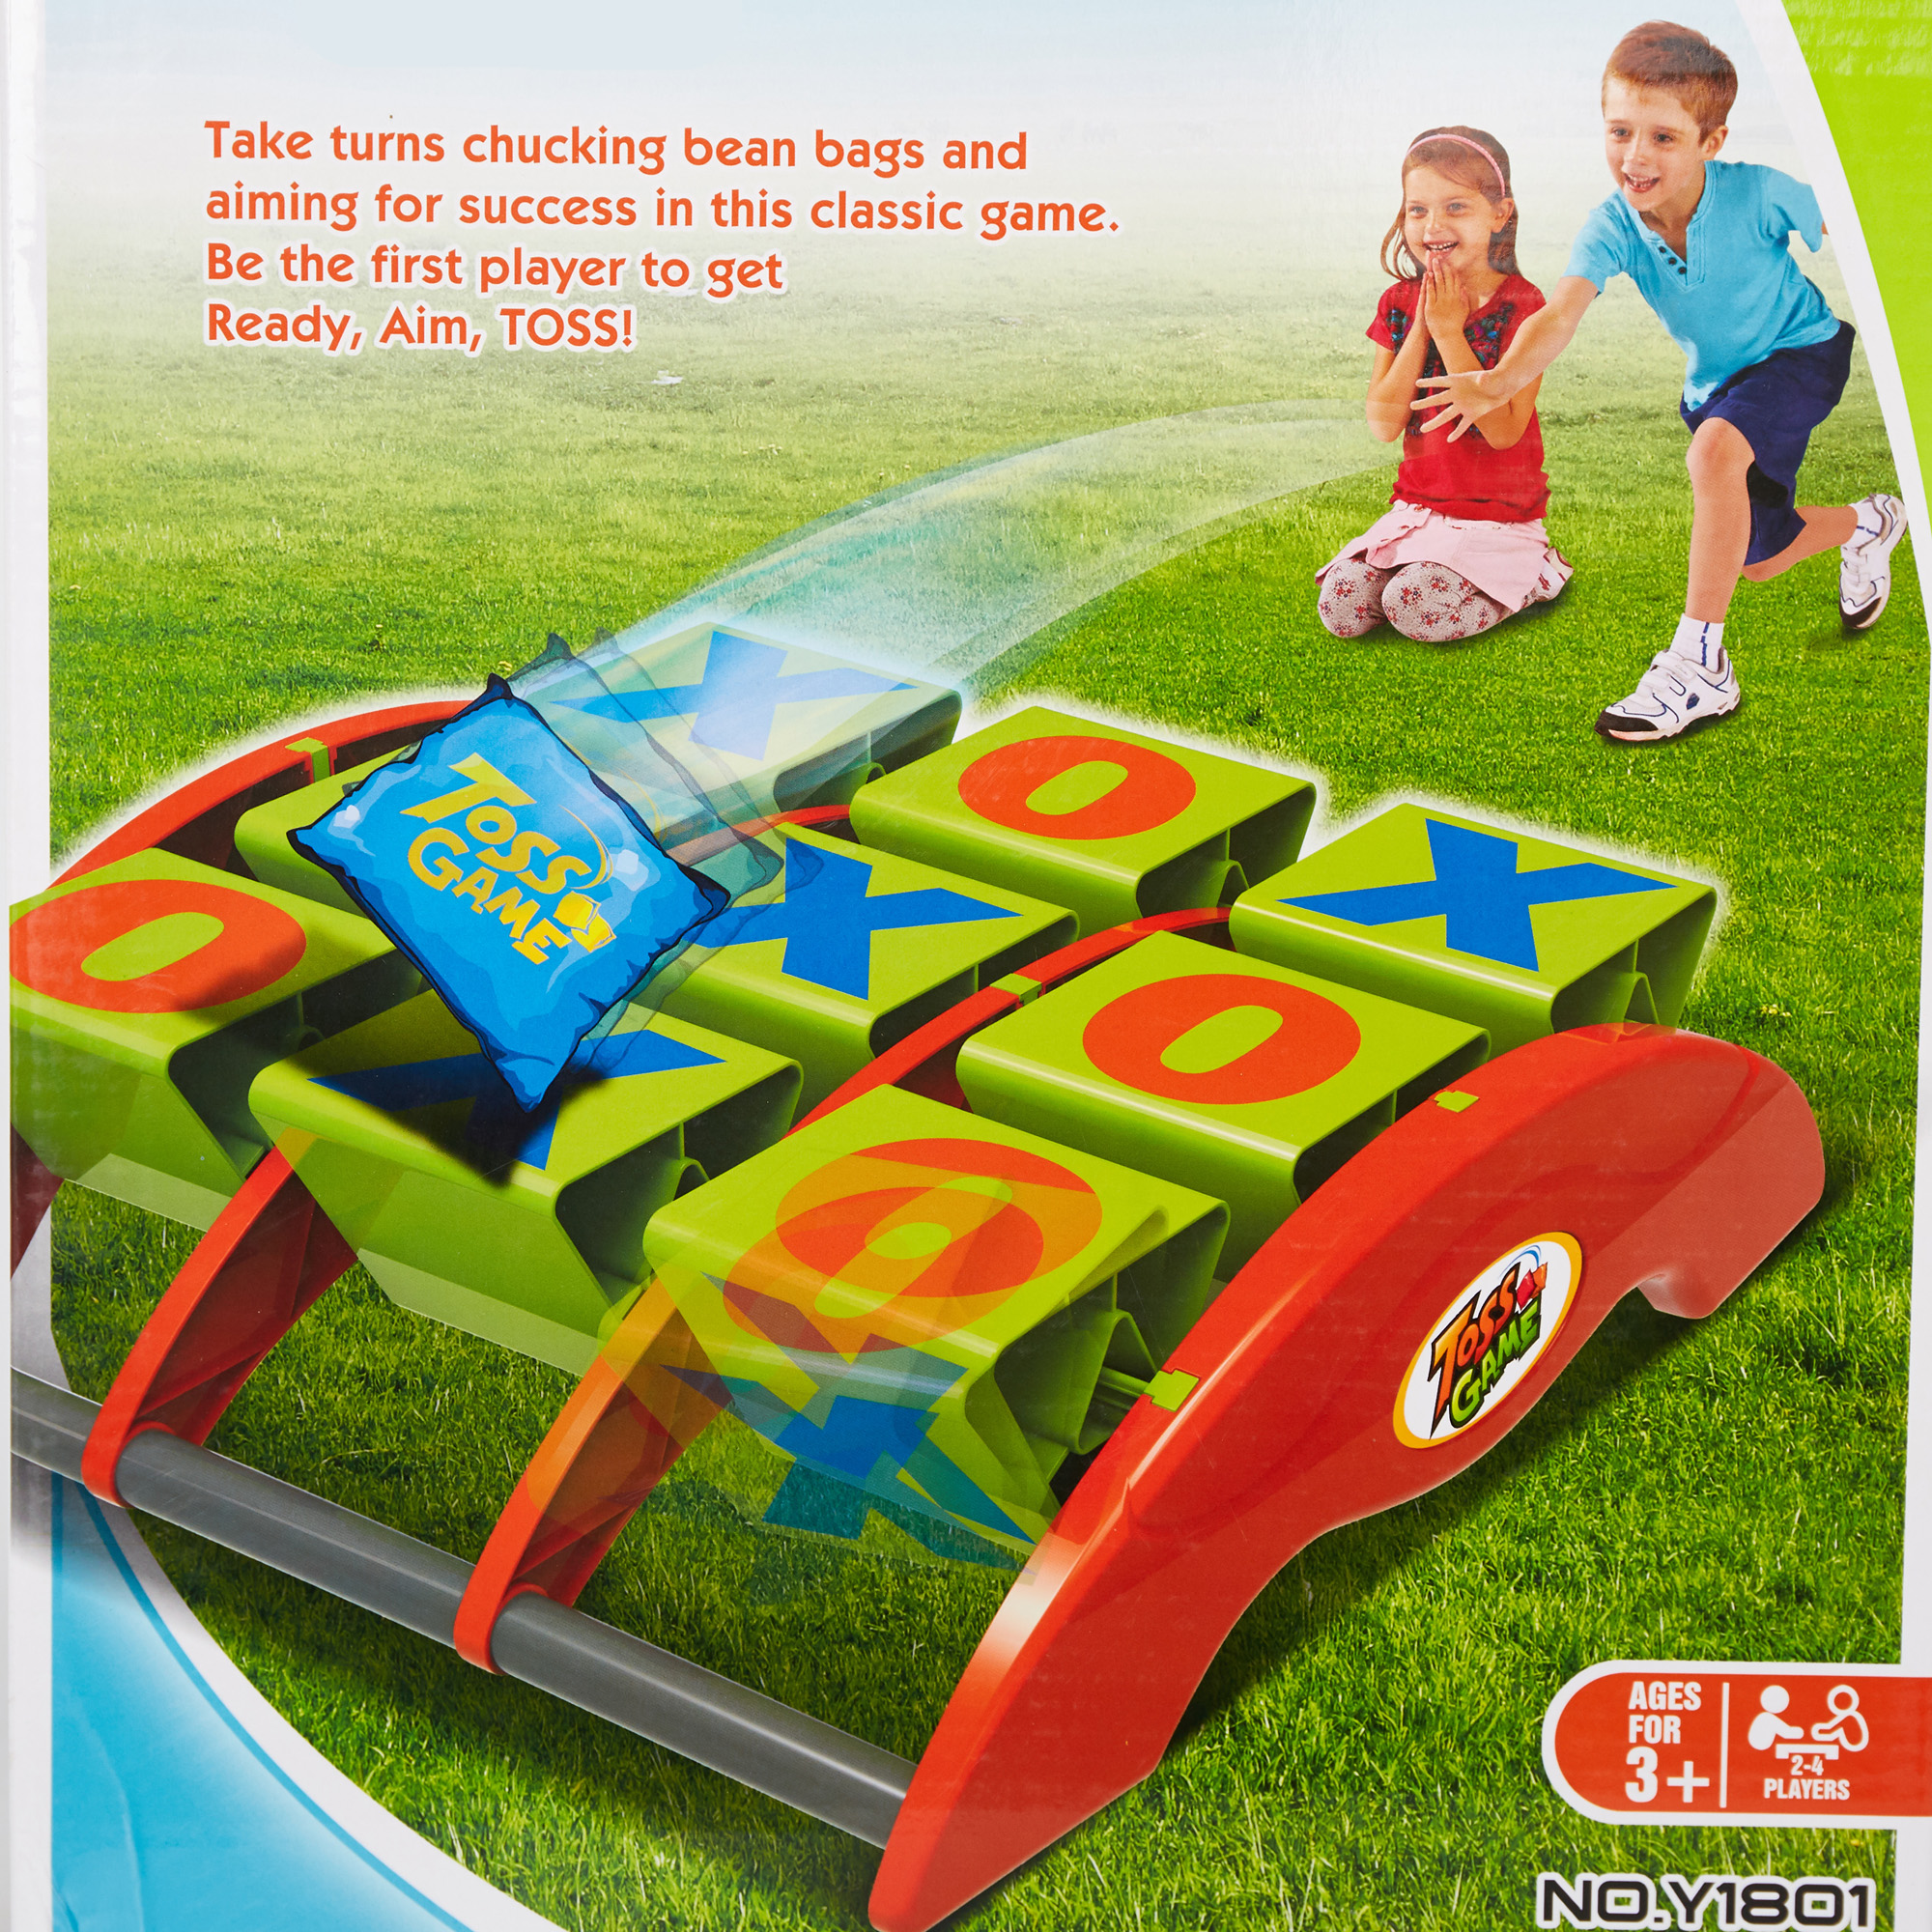 Outstanding Us 22 52 15 Off Tic Tac Toss Bean Bag Toss Game Set Sporty Bean Bag Corn Hole Outdoor Indoor Game Set In Toy Sports From Toys Hobbies On Evergreenethics Interior Chair Design Evergreenethicsorg